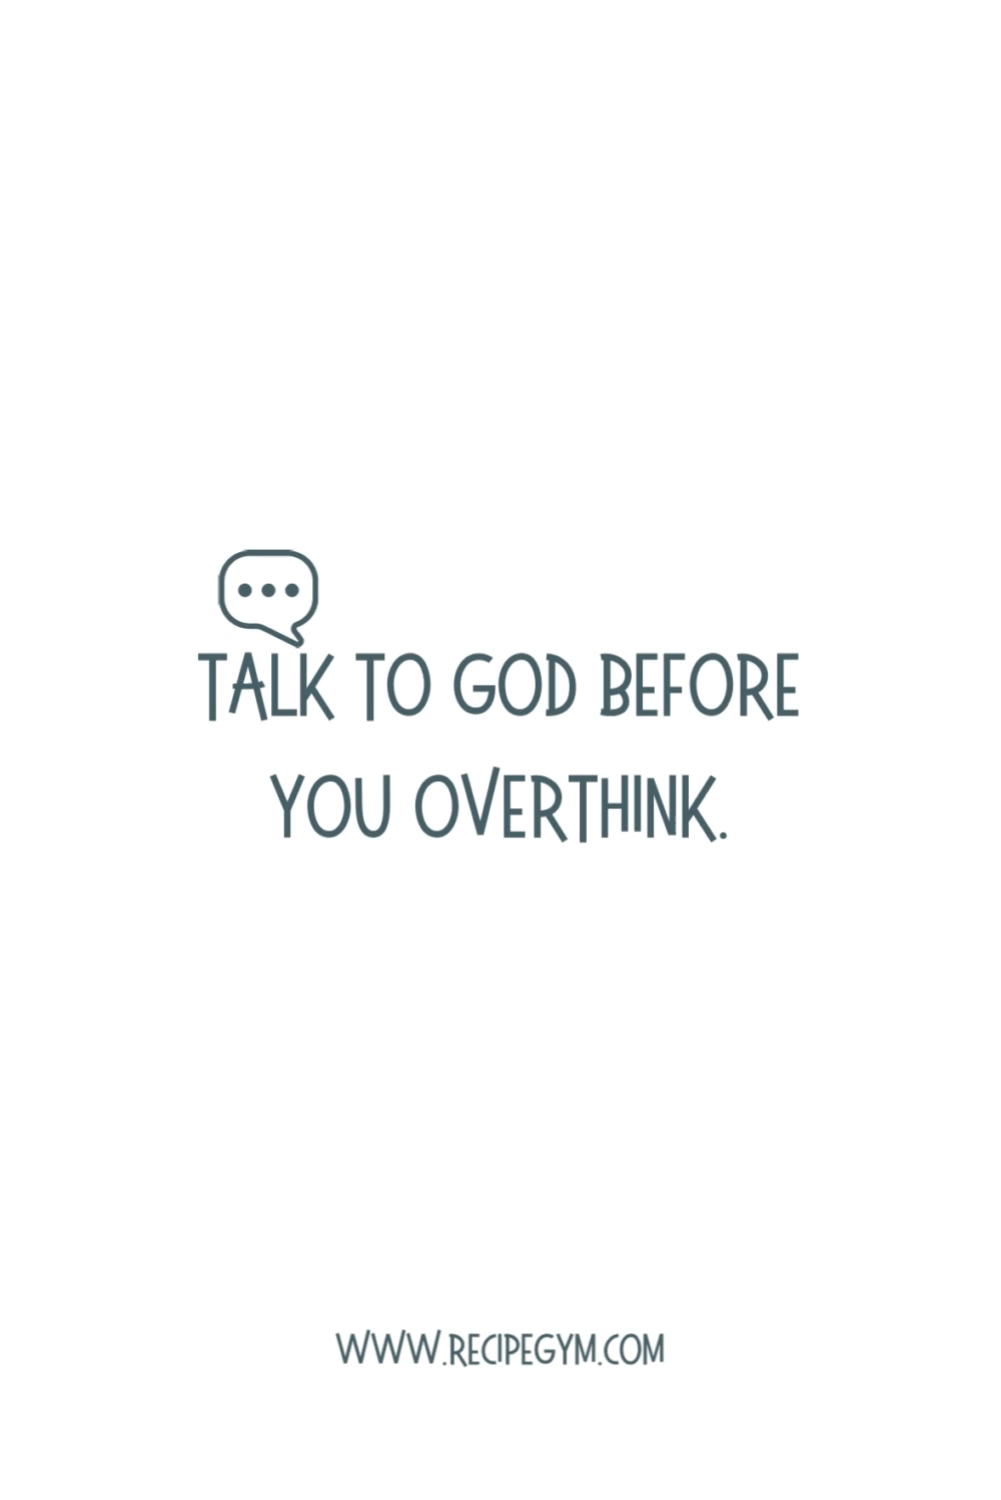 Talk to God First Before Overthinking it | Motivational Quote